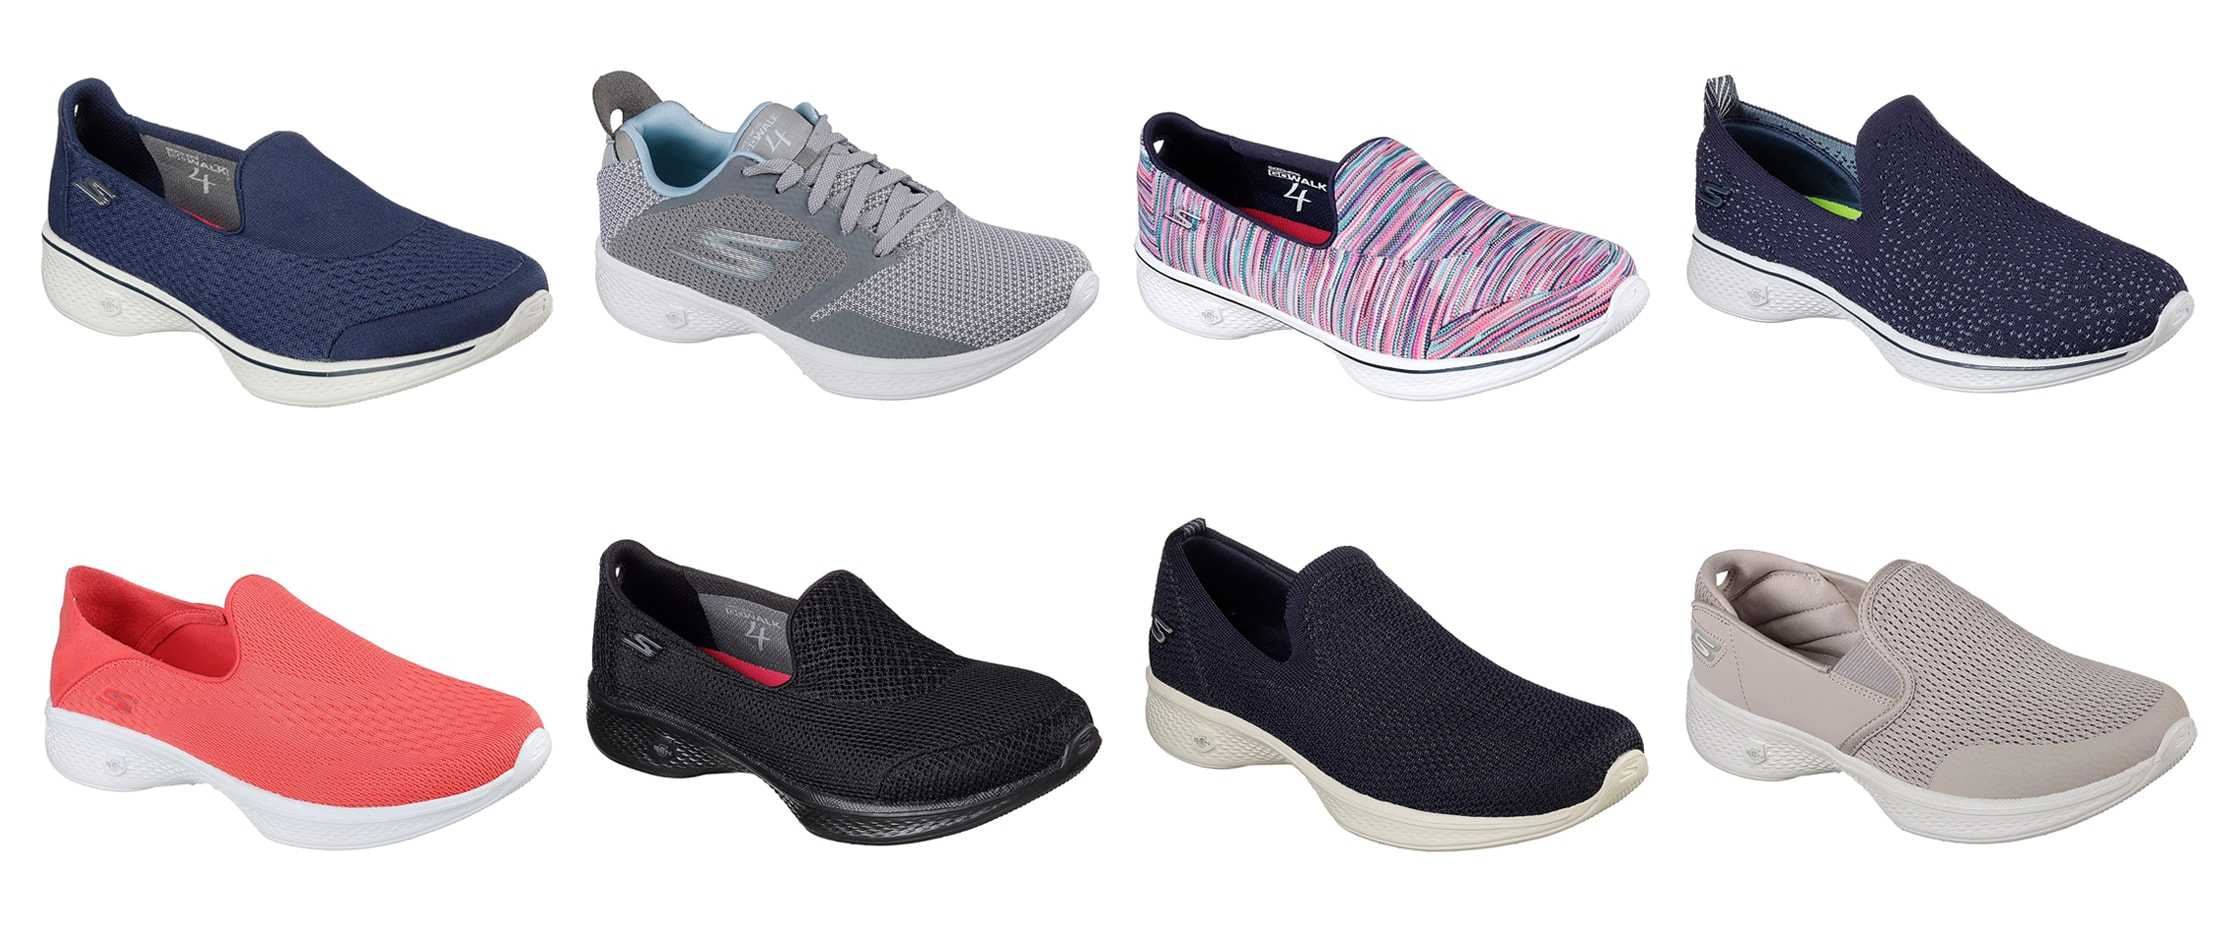 Different Versions Of The GOwalk 4